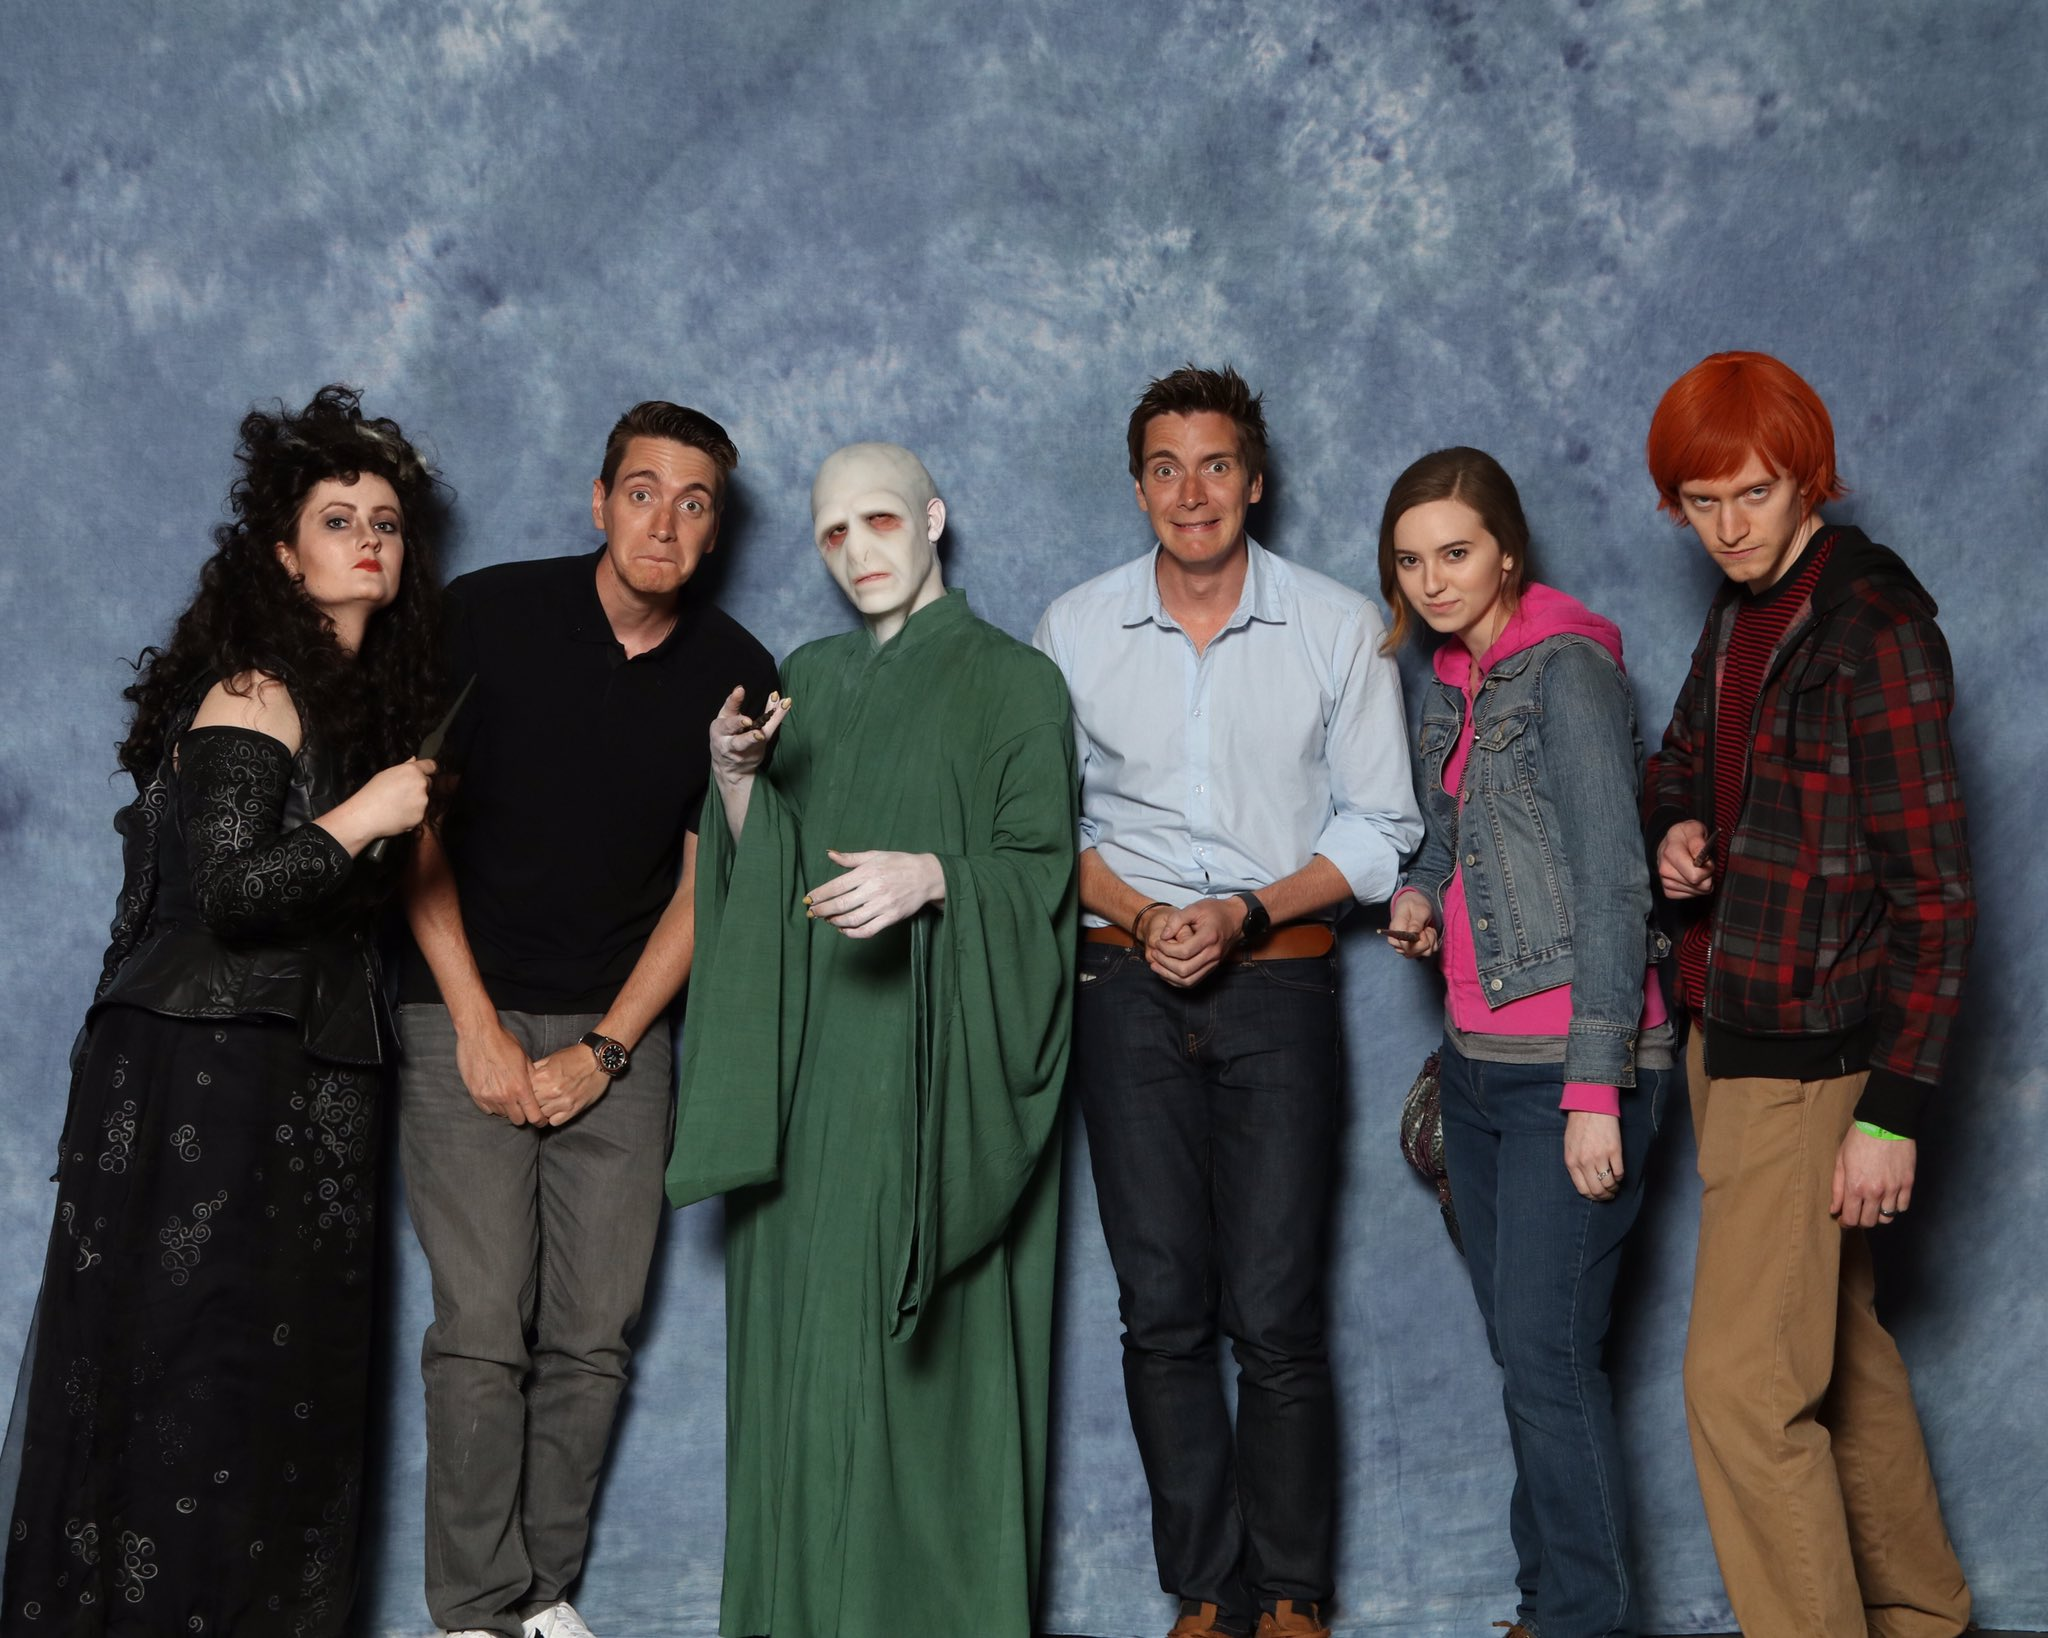 James and Oliver Phelps at Dallas Comic Con - The-Leaky ...